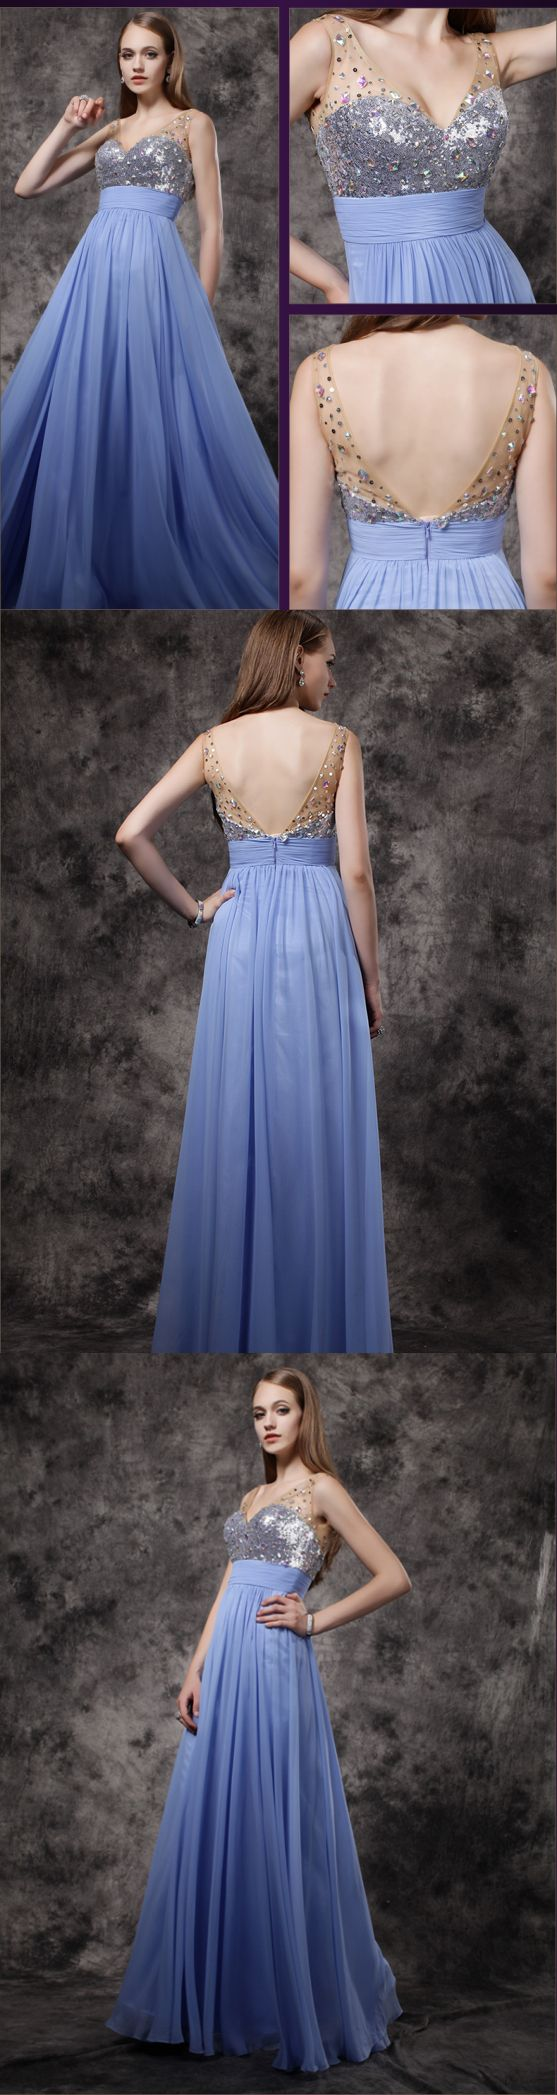 prom dress simple lavender chiffon aline cheap long prom dress